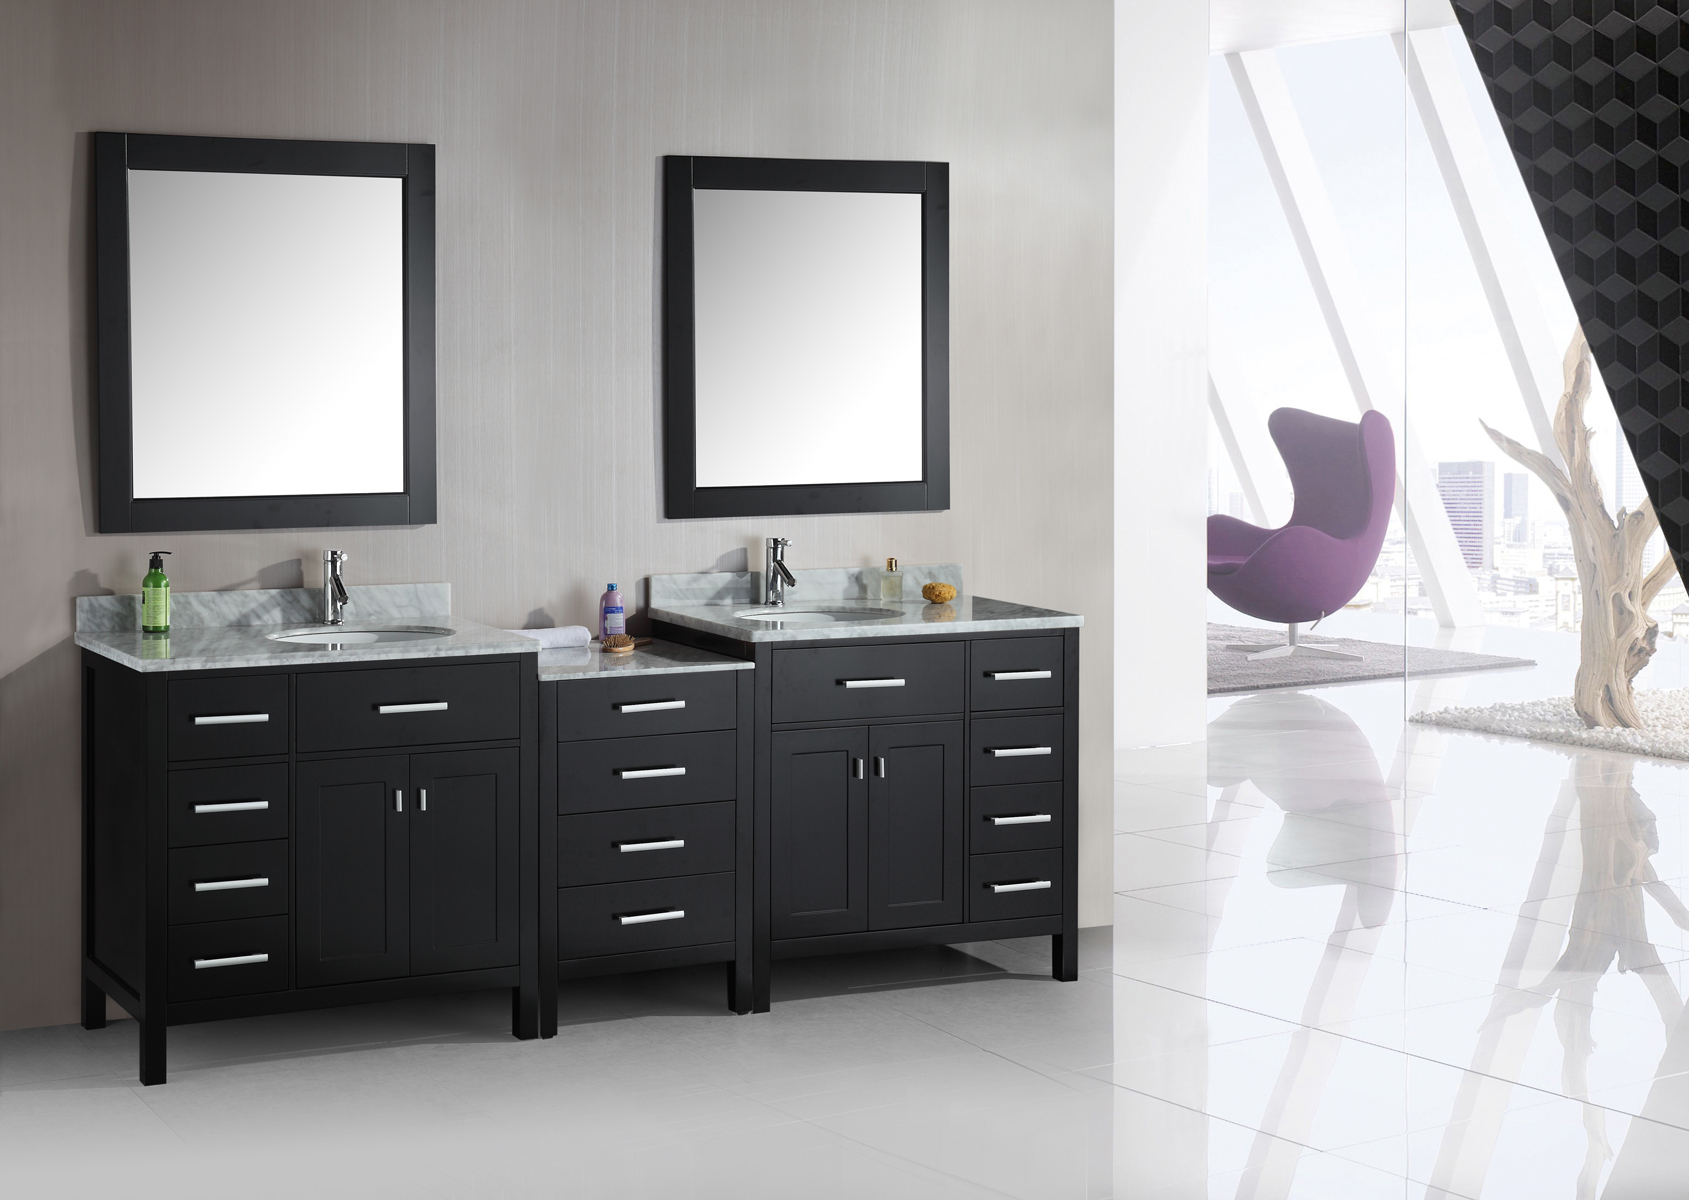 Dazzling IKEA Bathroom Vanity Ideas Designs